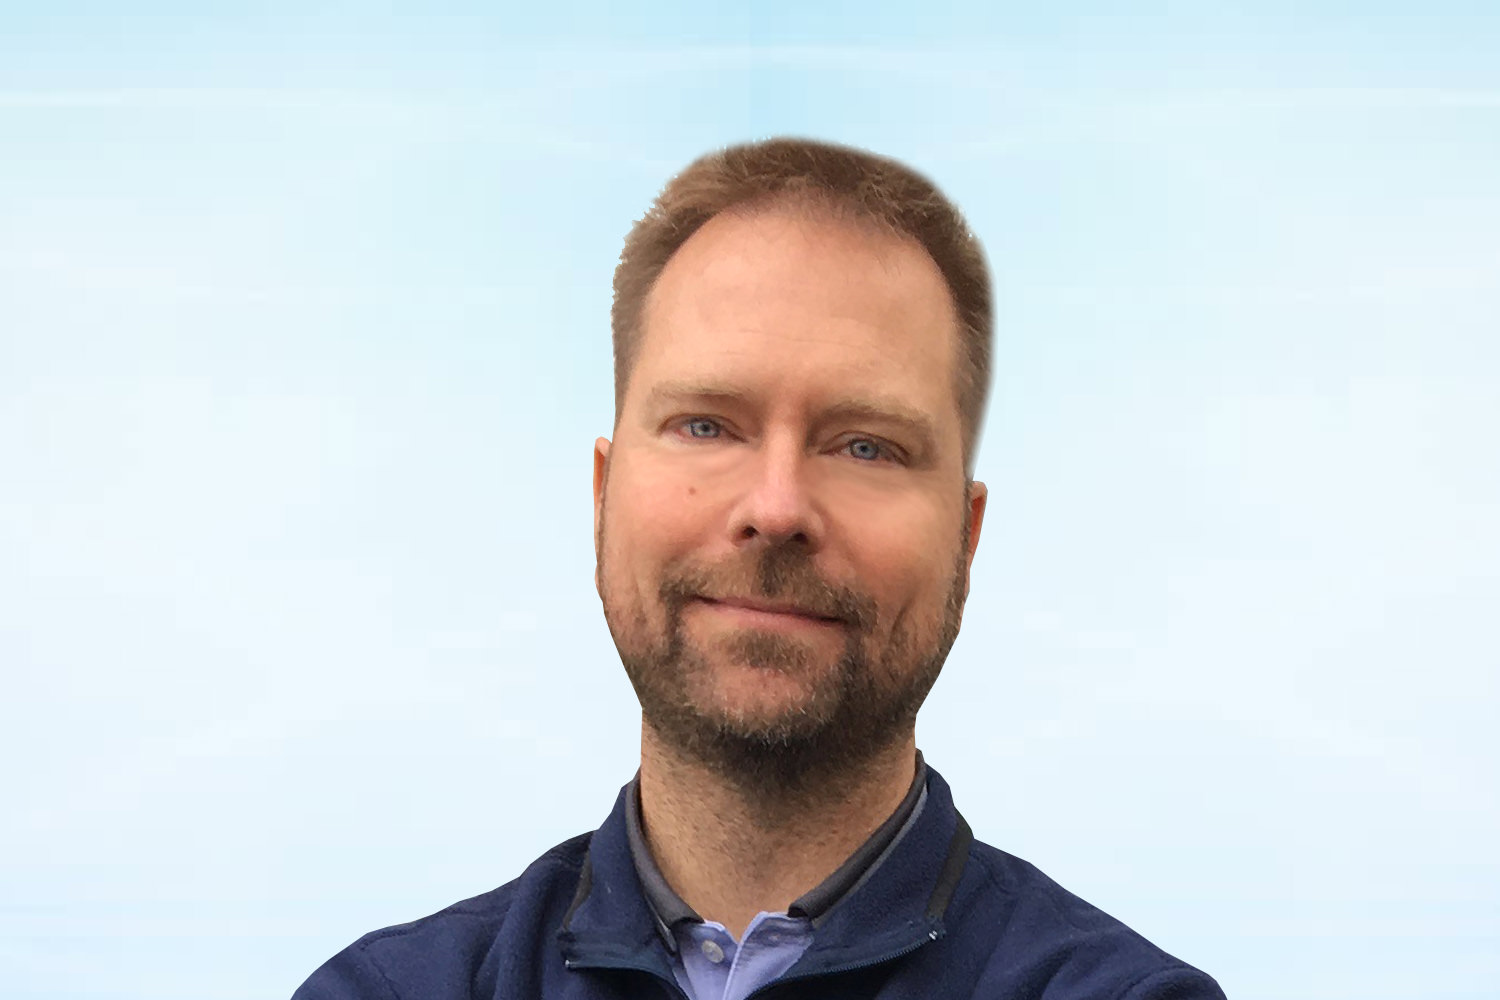 Aspen equipment hires safety expert Ron Lamprecht as director of safety, compliance and development